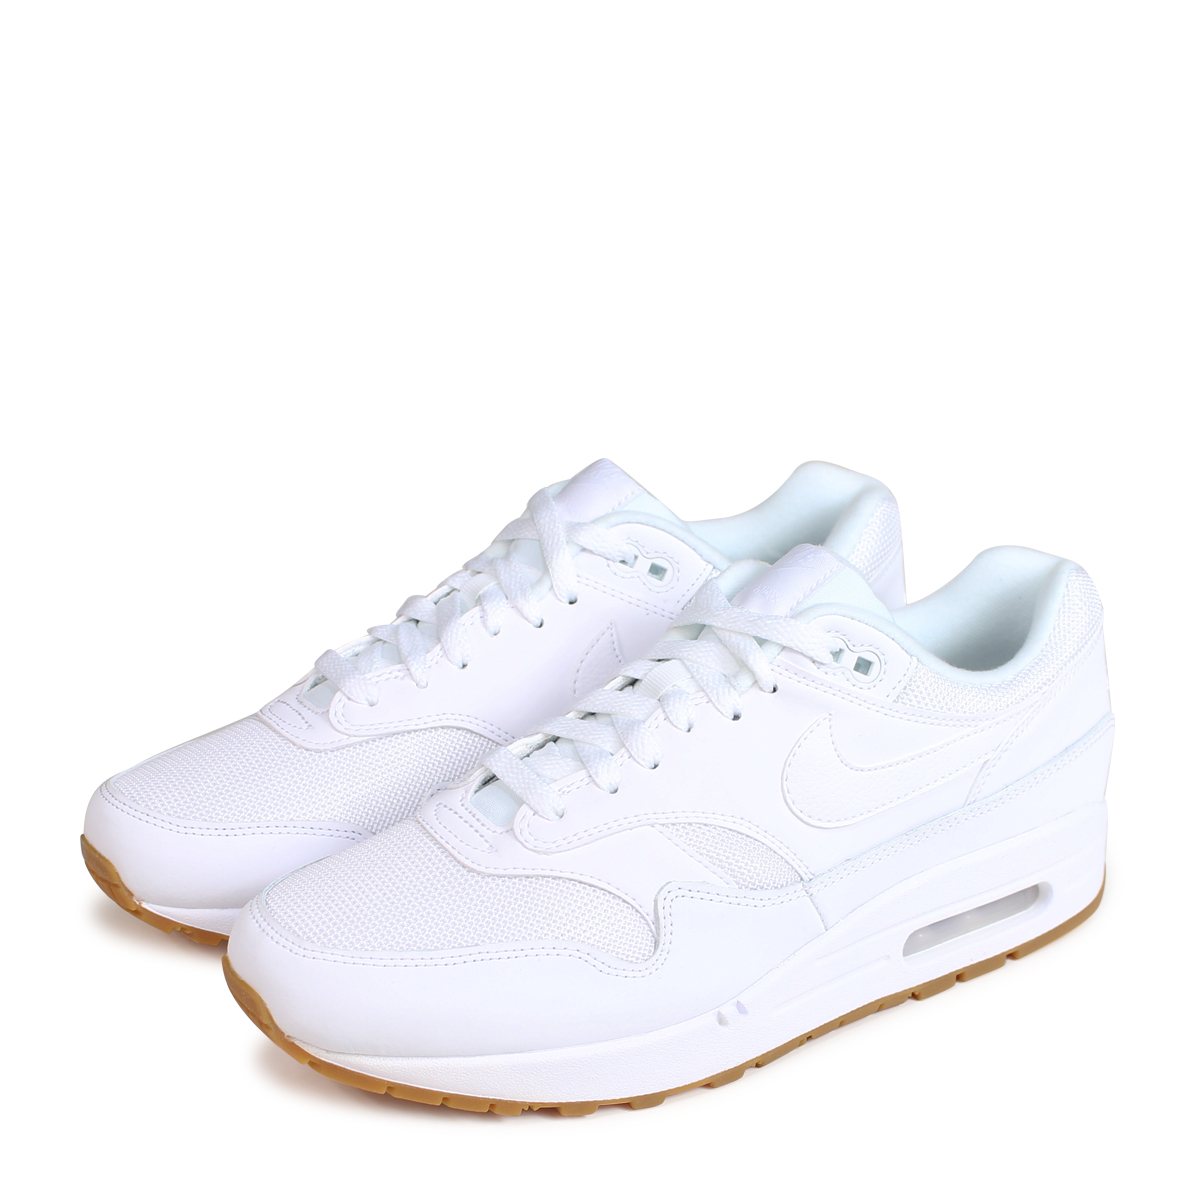 NIKE AIR MAX 1 Kie Ney AMAX 1 sneakers men AH8145 109 white [load planned Shinnyu load in reservation product 724 containing] [187]